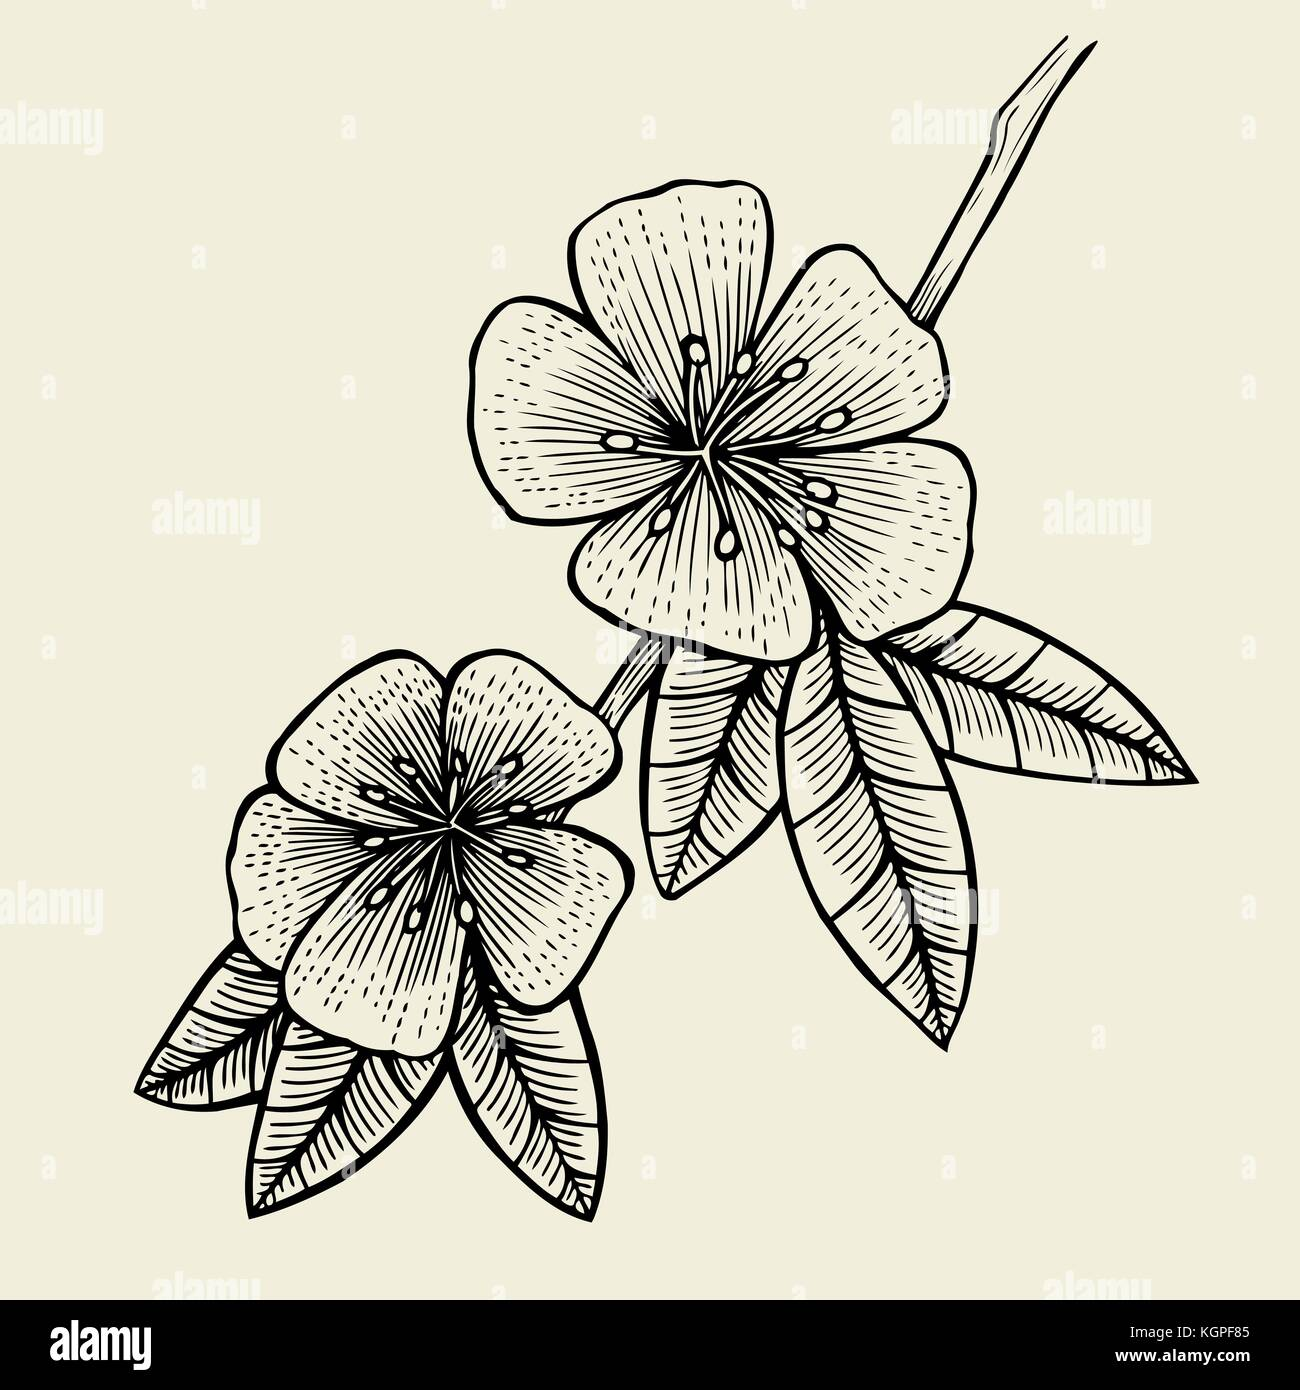 Hand drawn sketch flower of fruit tree blossom vector illustration isolated on beige